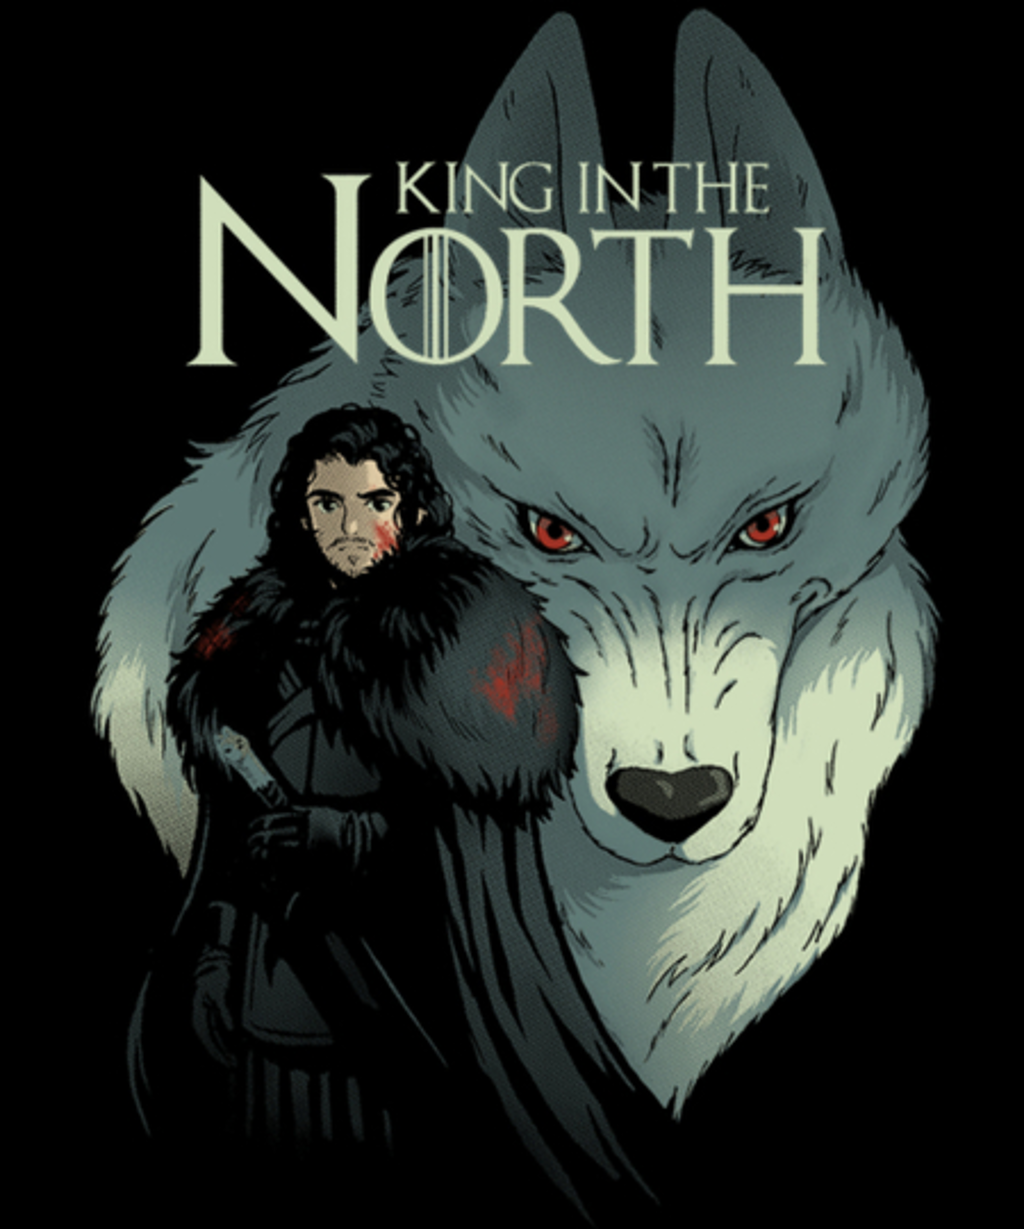 Qwertee: King in the north